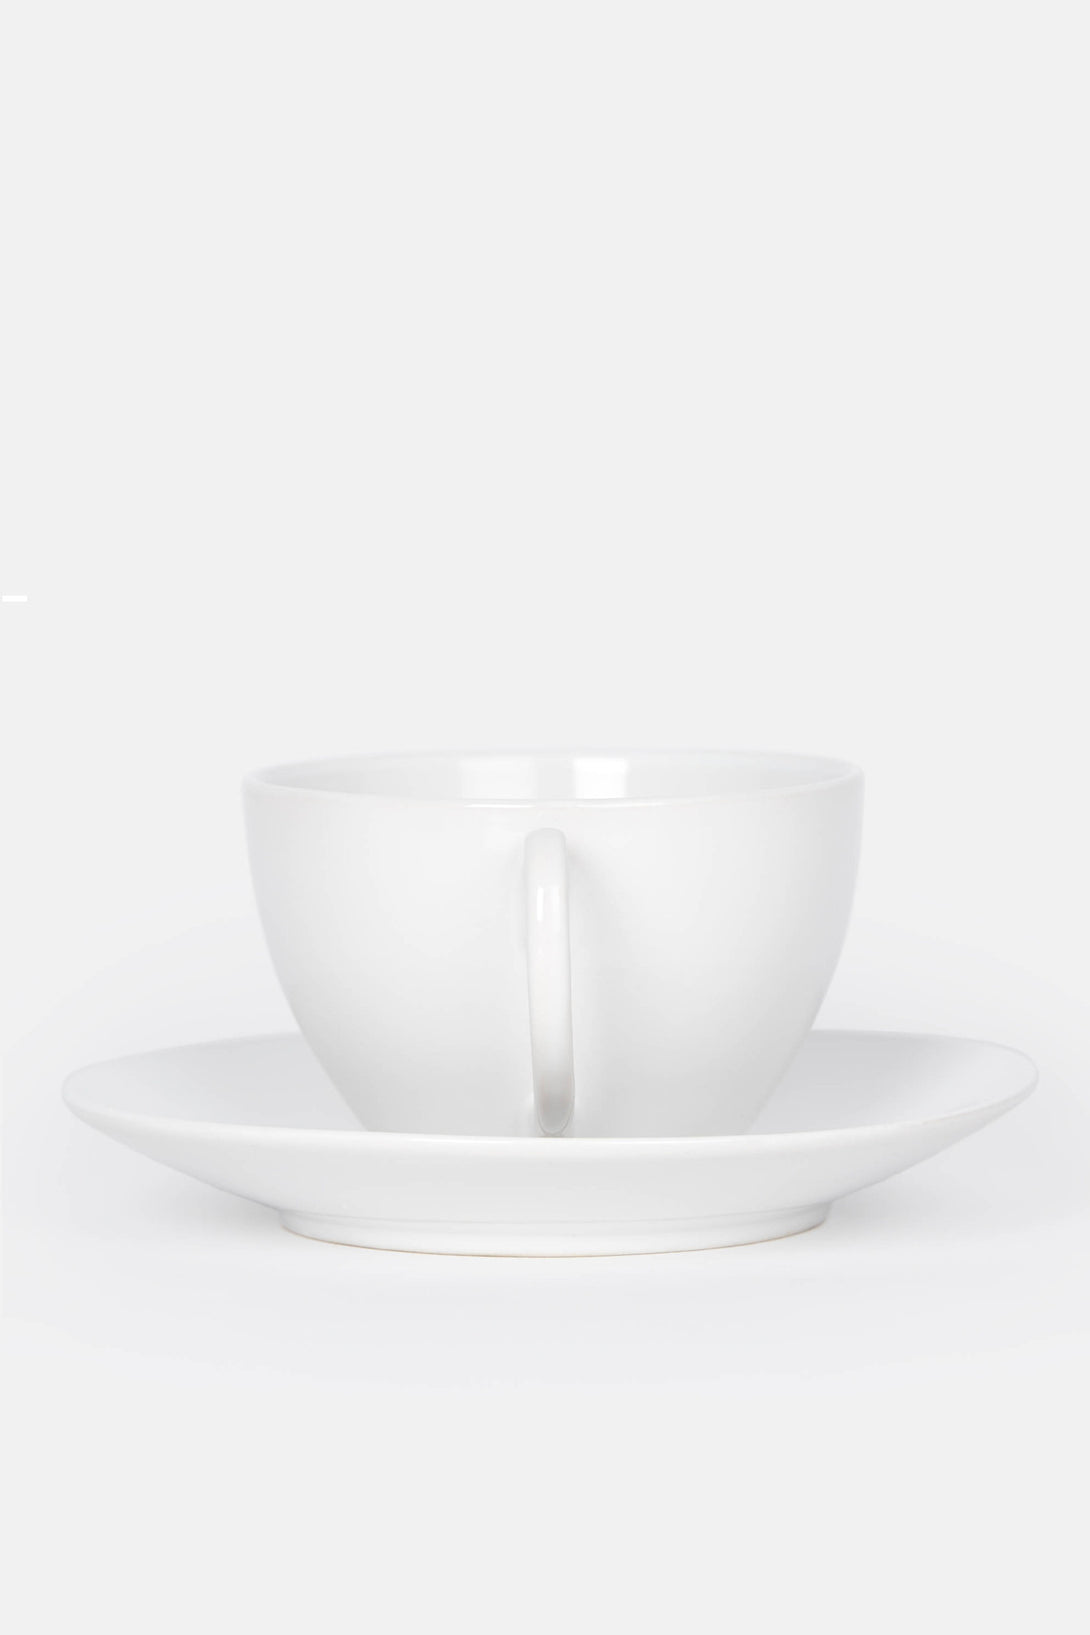 Coffee Cup and Saucer · Coffee Cup and Saucer ... & Coffee Cup and Saucer u2013 The Line